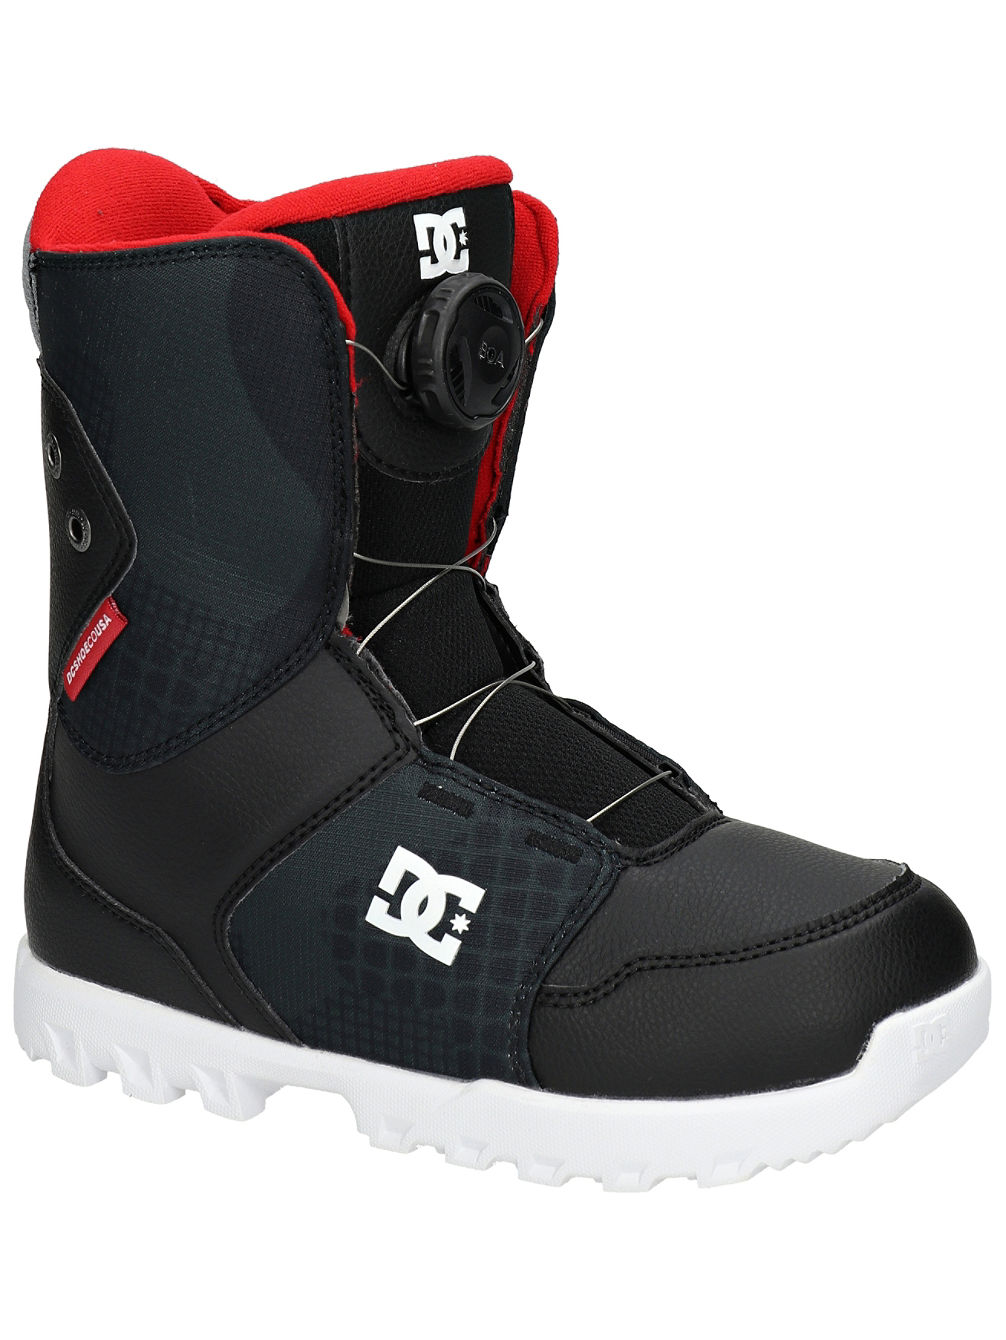 Scout Snowboardboots 2021